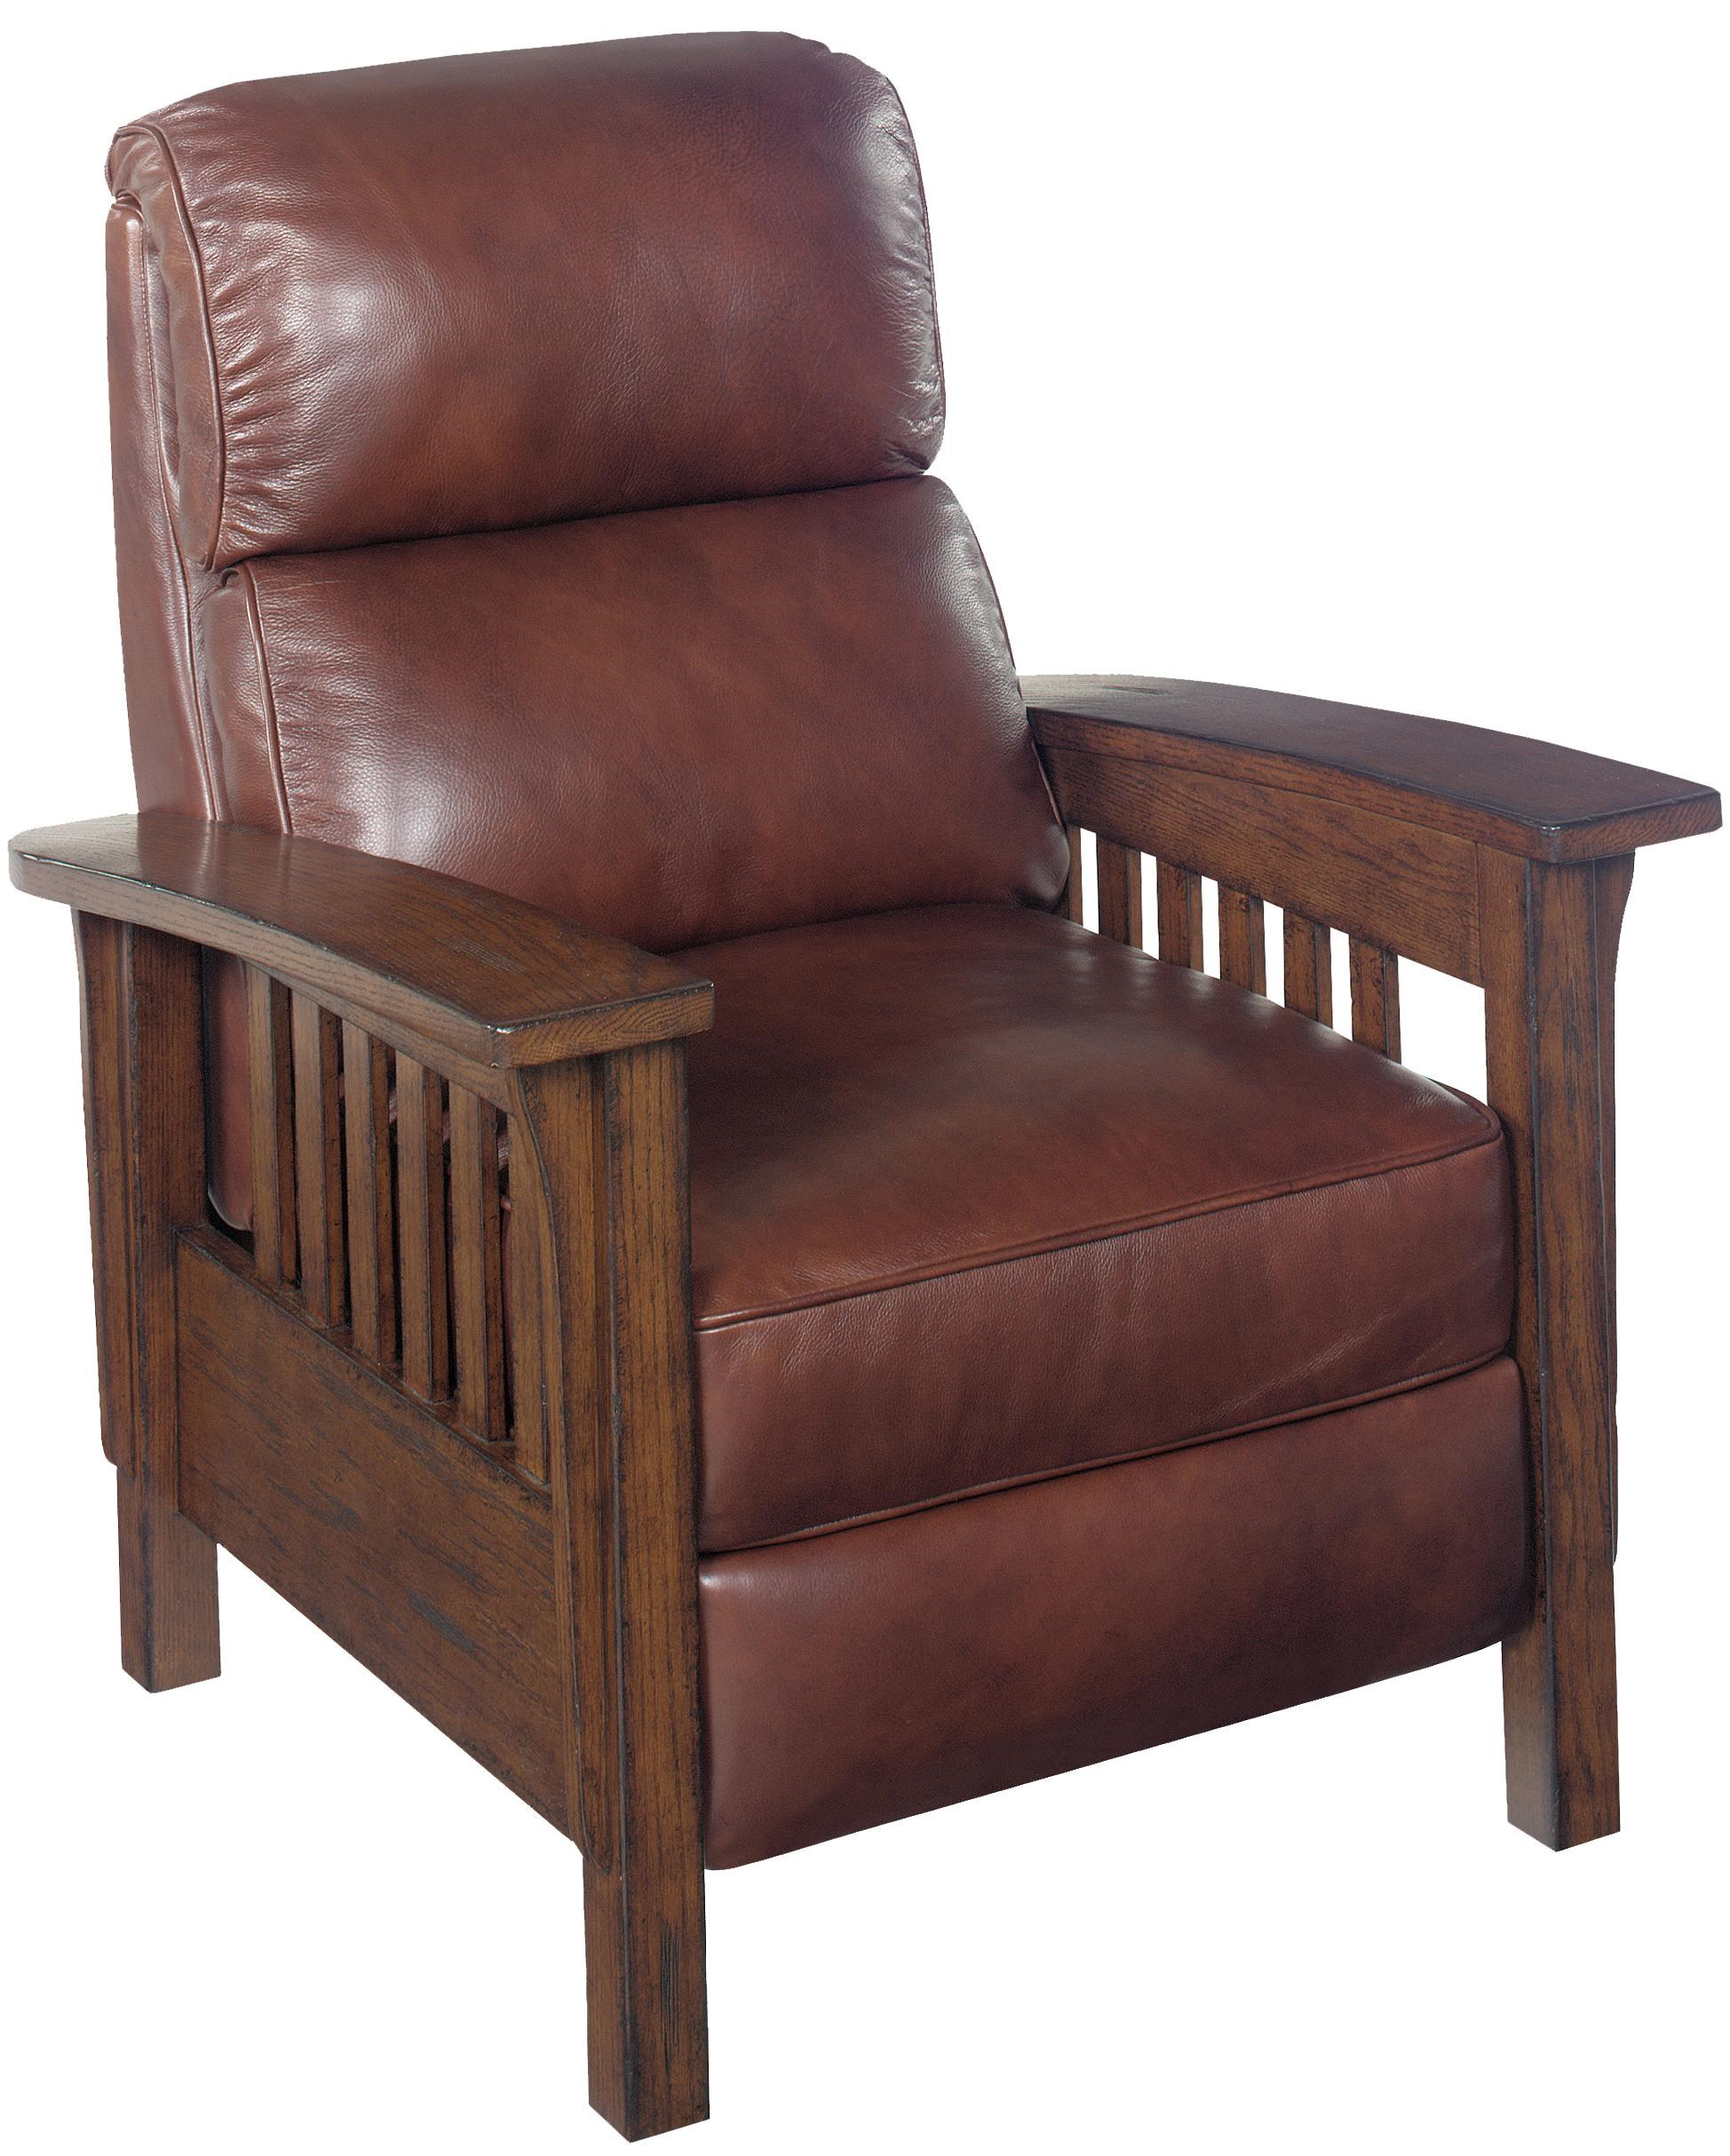 Mission Style Recliner Mission Seating Recliner Shown In